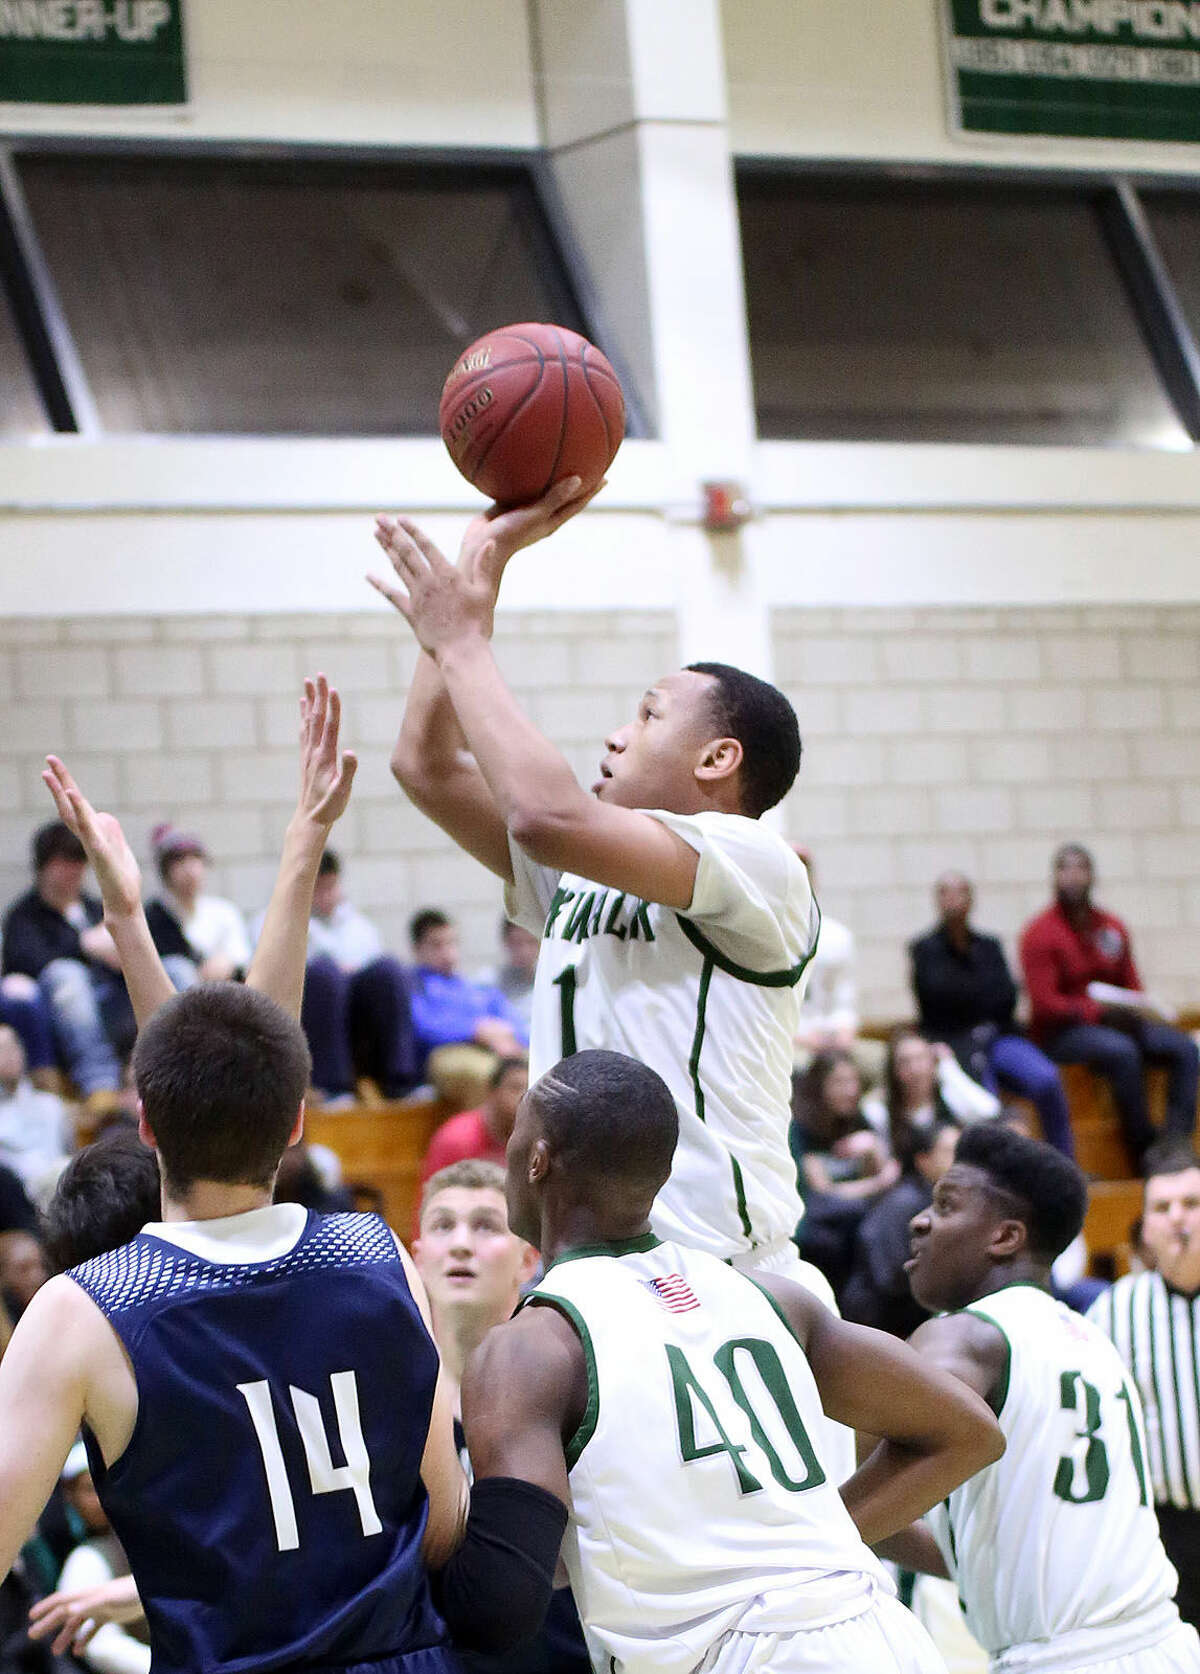 Norwalk's #1, AJ Jerome, takes a shot during a home game against Staples Monday evening. Hour Photo / Danielle Calloway